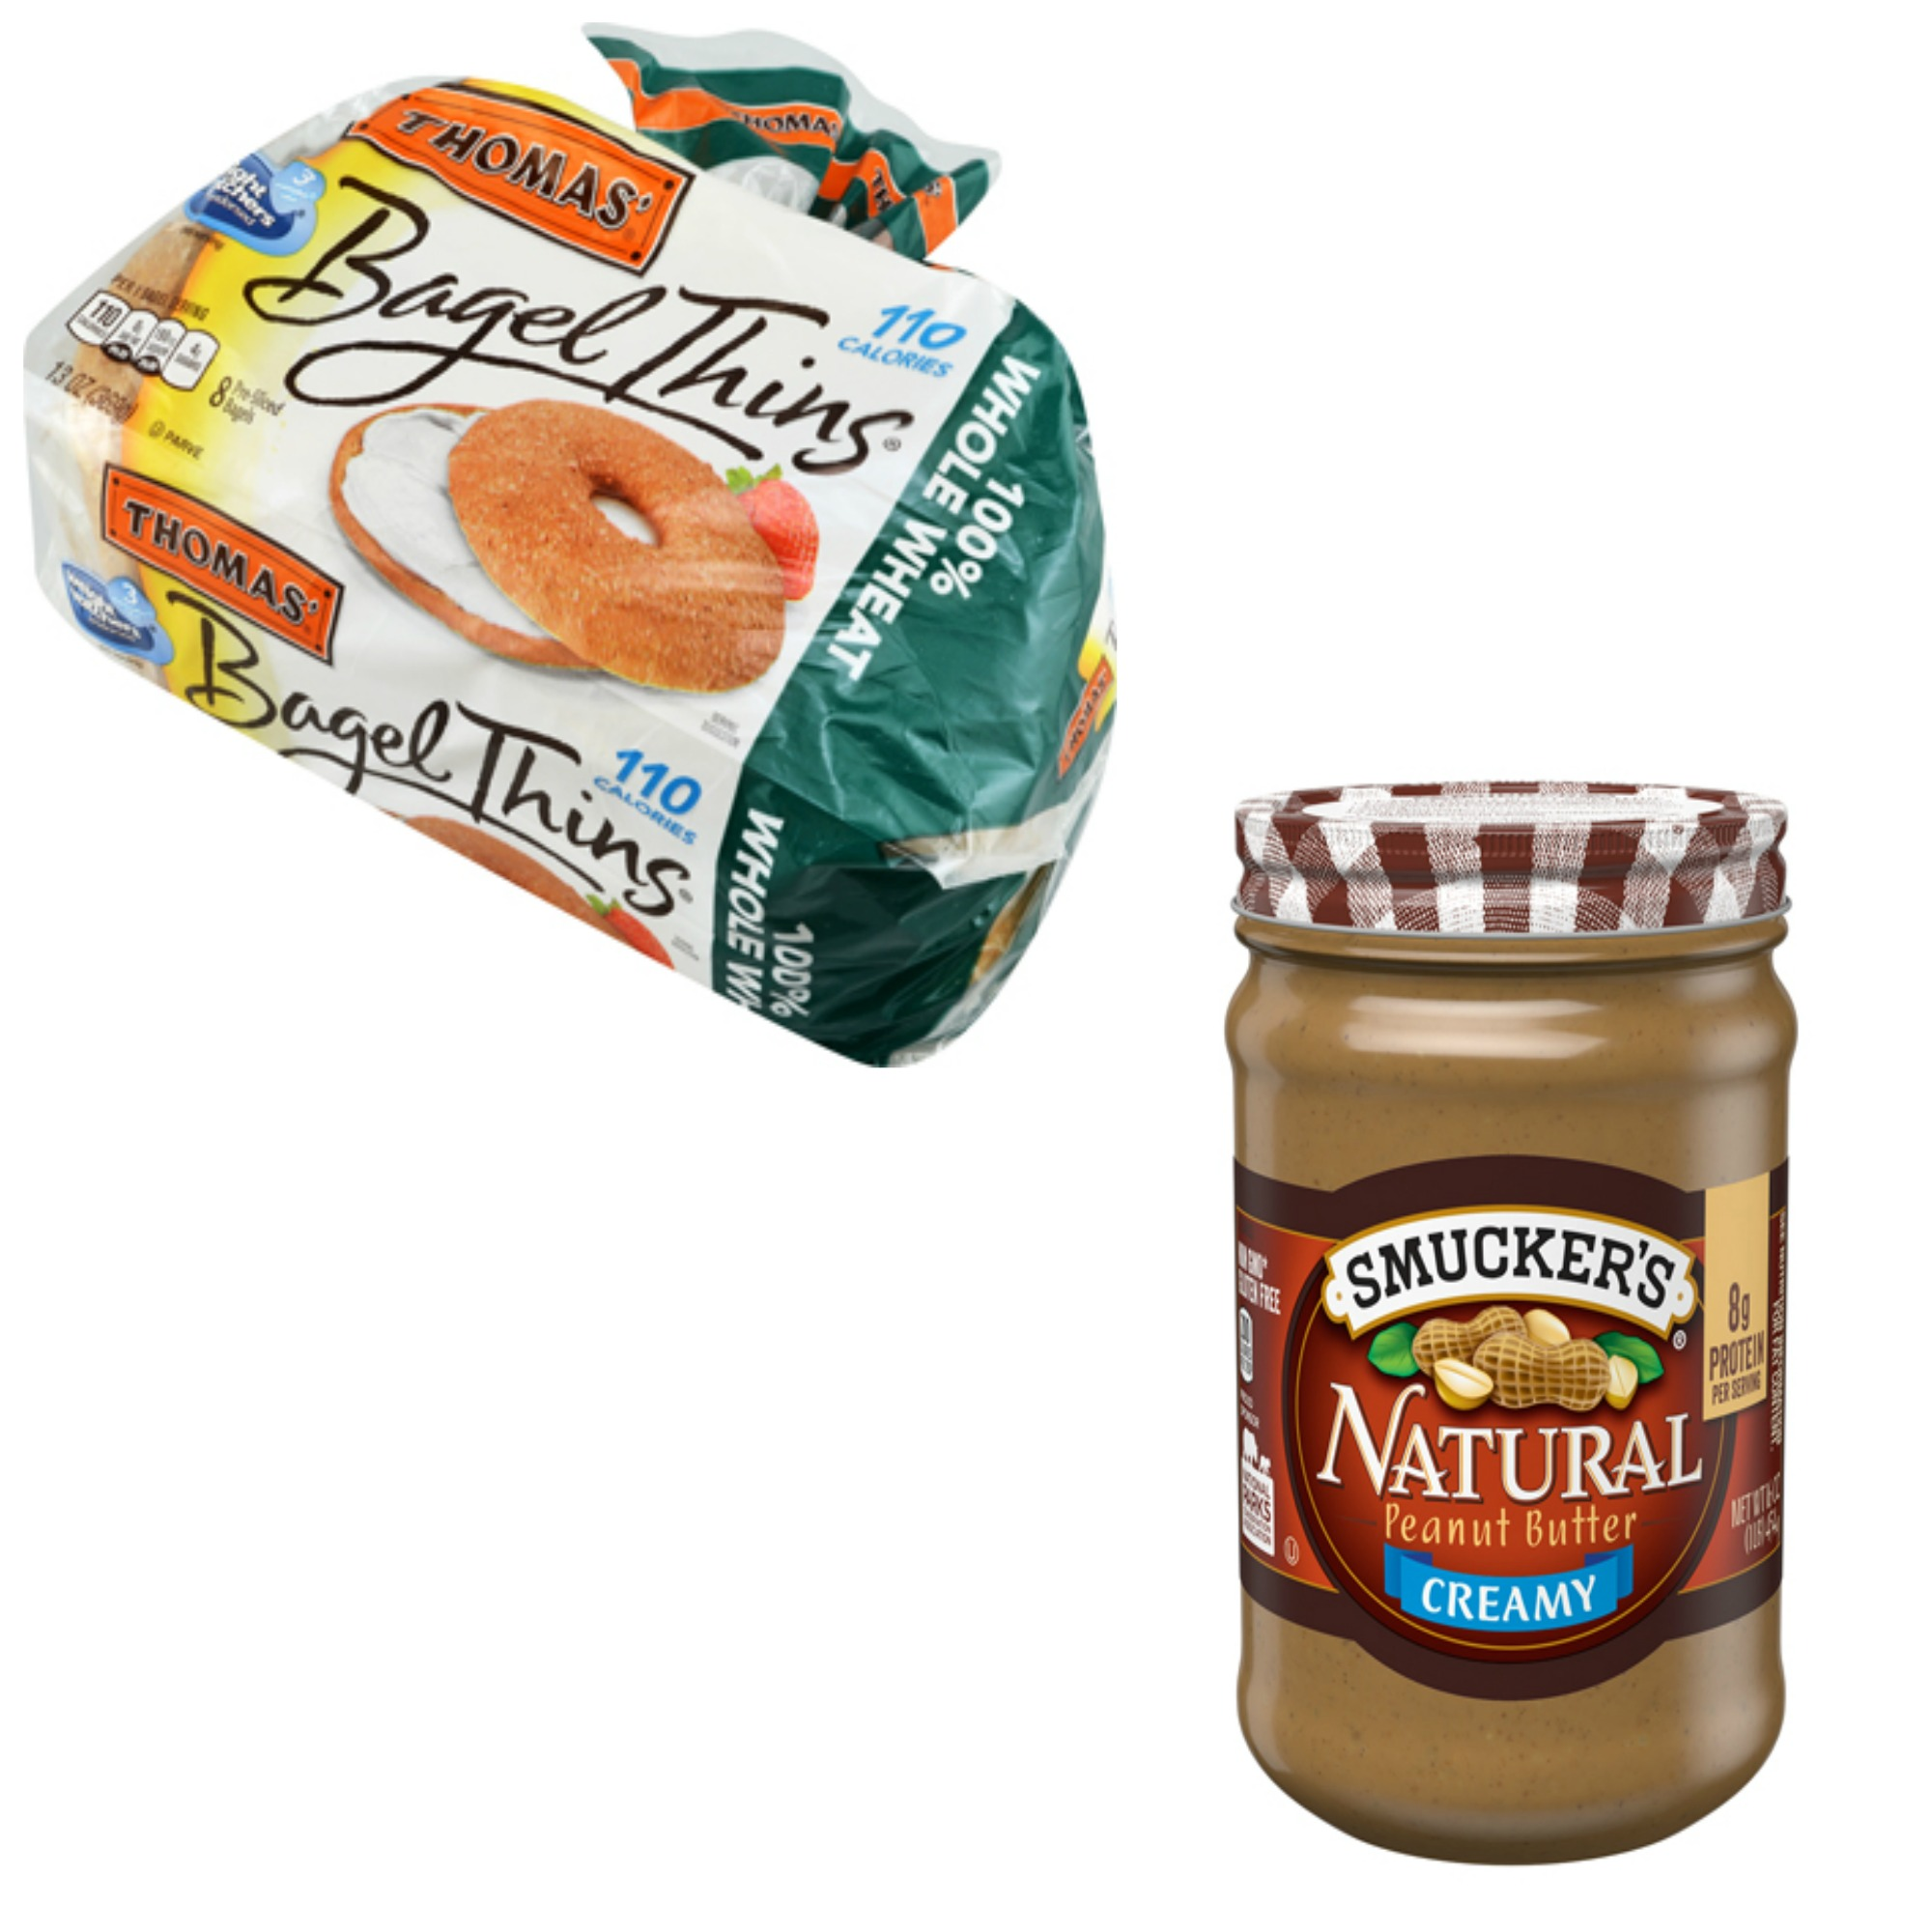 Bagel thins and Natural peanut butter.jpg